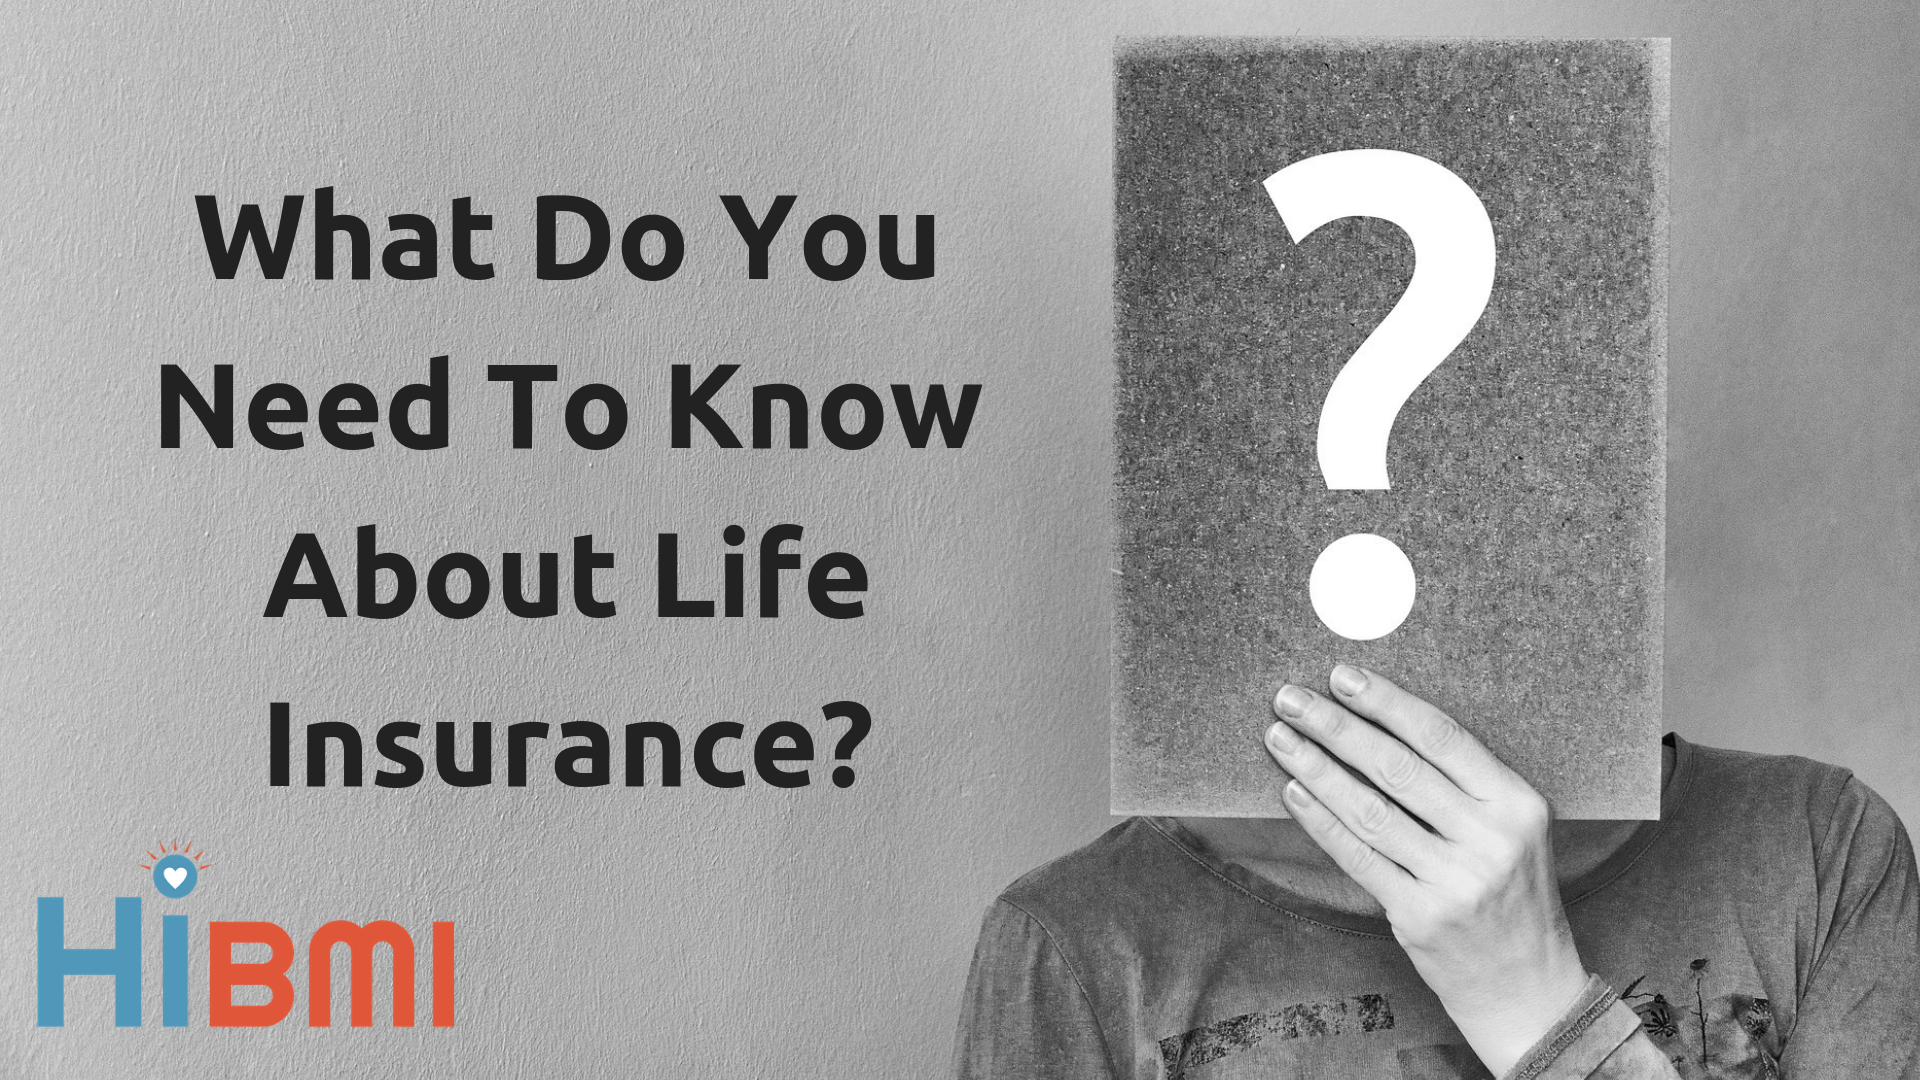 life insurance 101, everything you need to know about life insurance, whole life insurance, term life insurance, universal life insurance, life insurance for the obese and overweight, get insured now